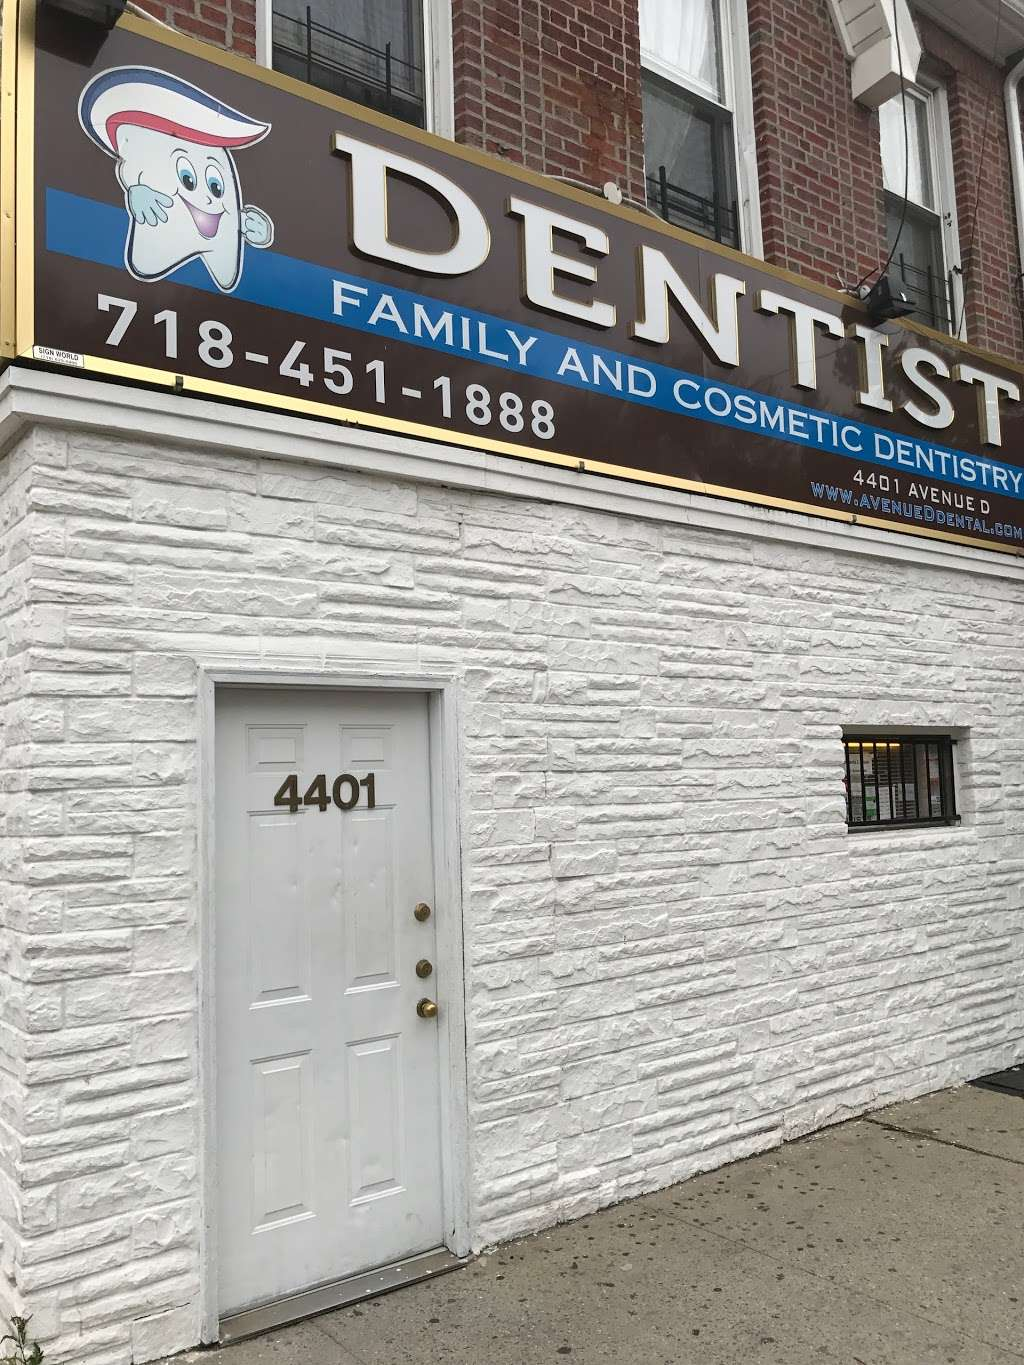 Avenue D Dental: Jamie S. Rosen, DDS - dentist  | Photo 5 of 6 | Address: 4401 Avenue D, Brooklyn, NY 11203, USA | Phone: (718) 451-1888